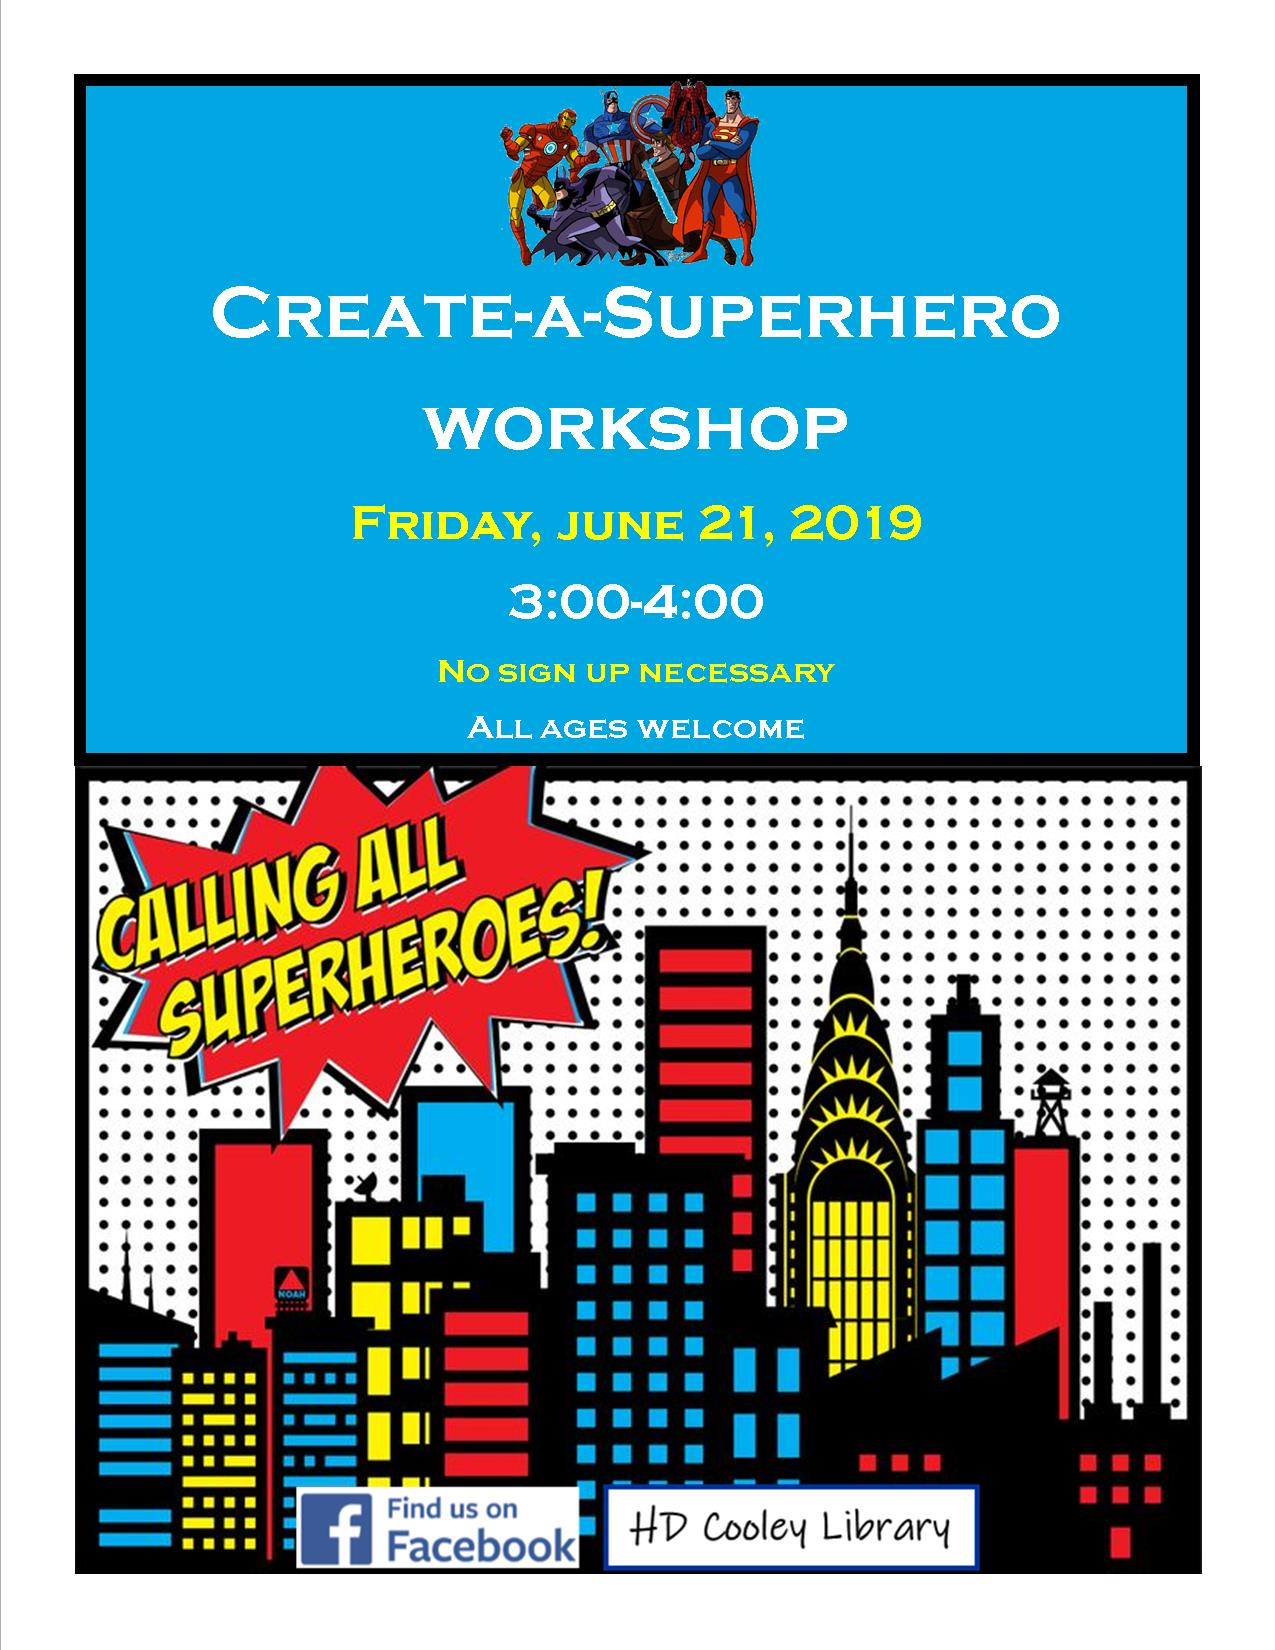 Superhero Workshop date and time